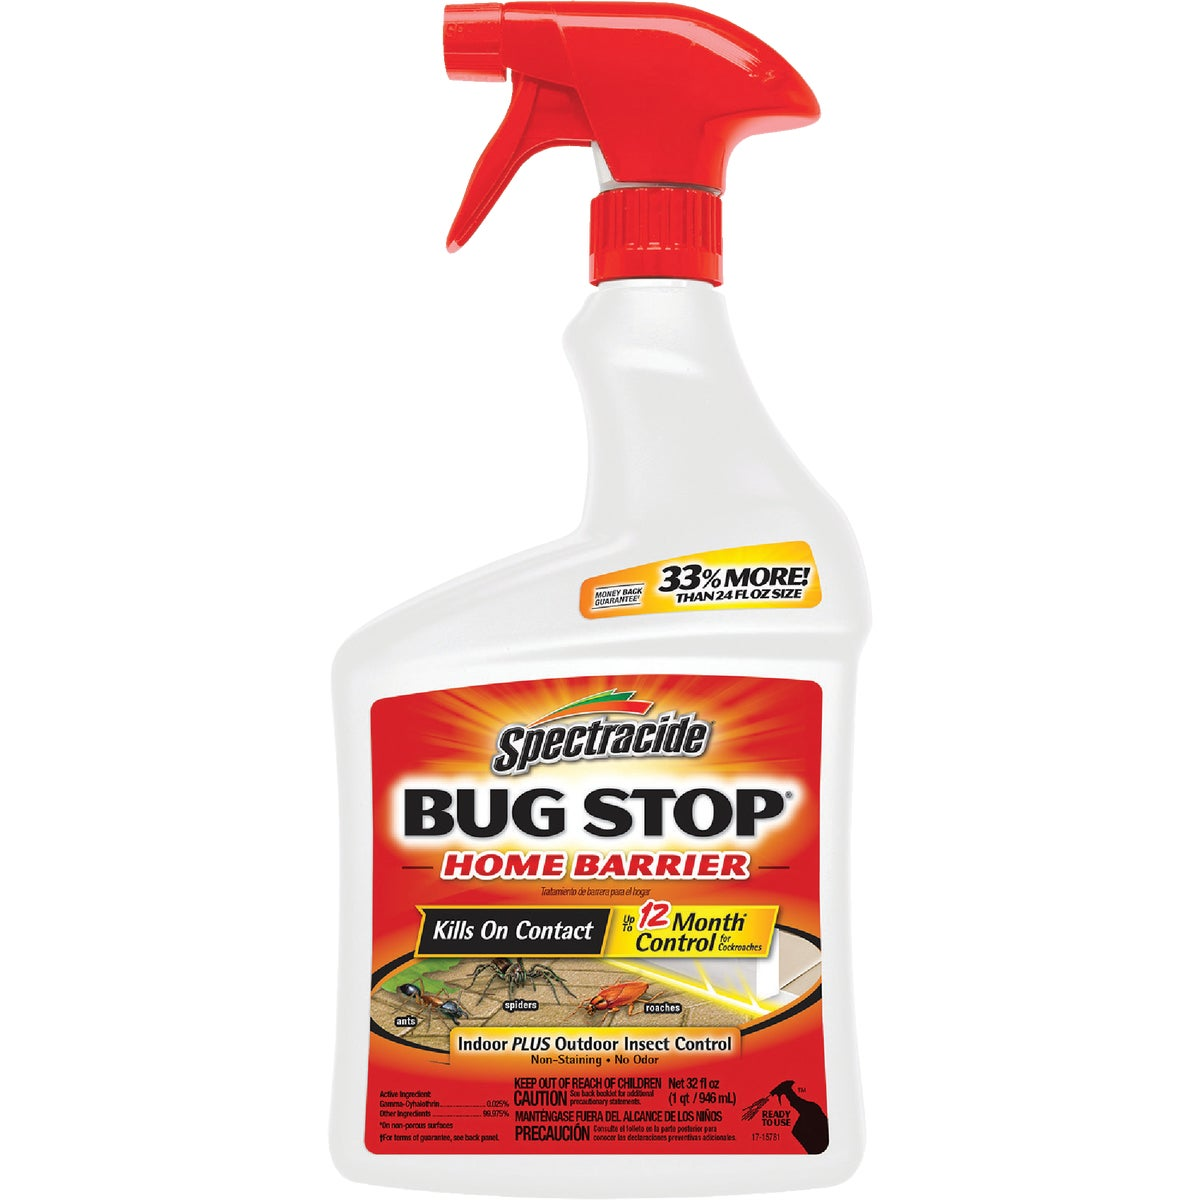 32OZ RTU BUG STOP KILLER - HG96099 by United Industries Co